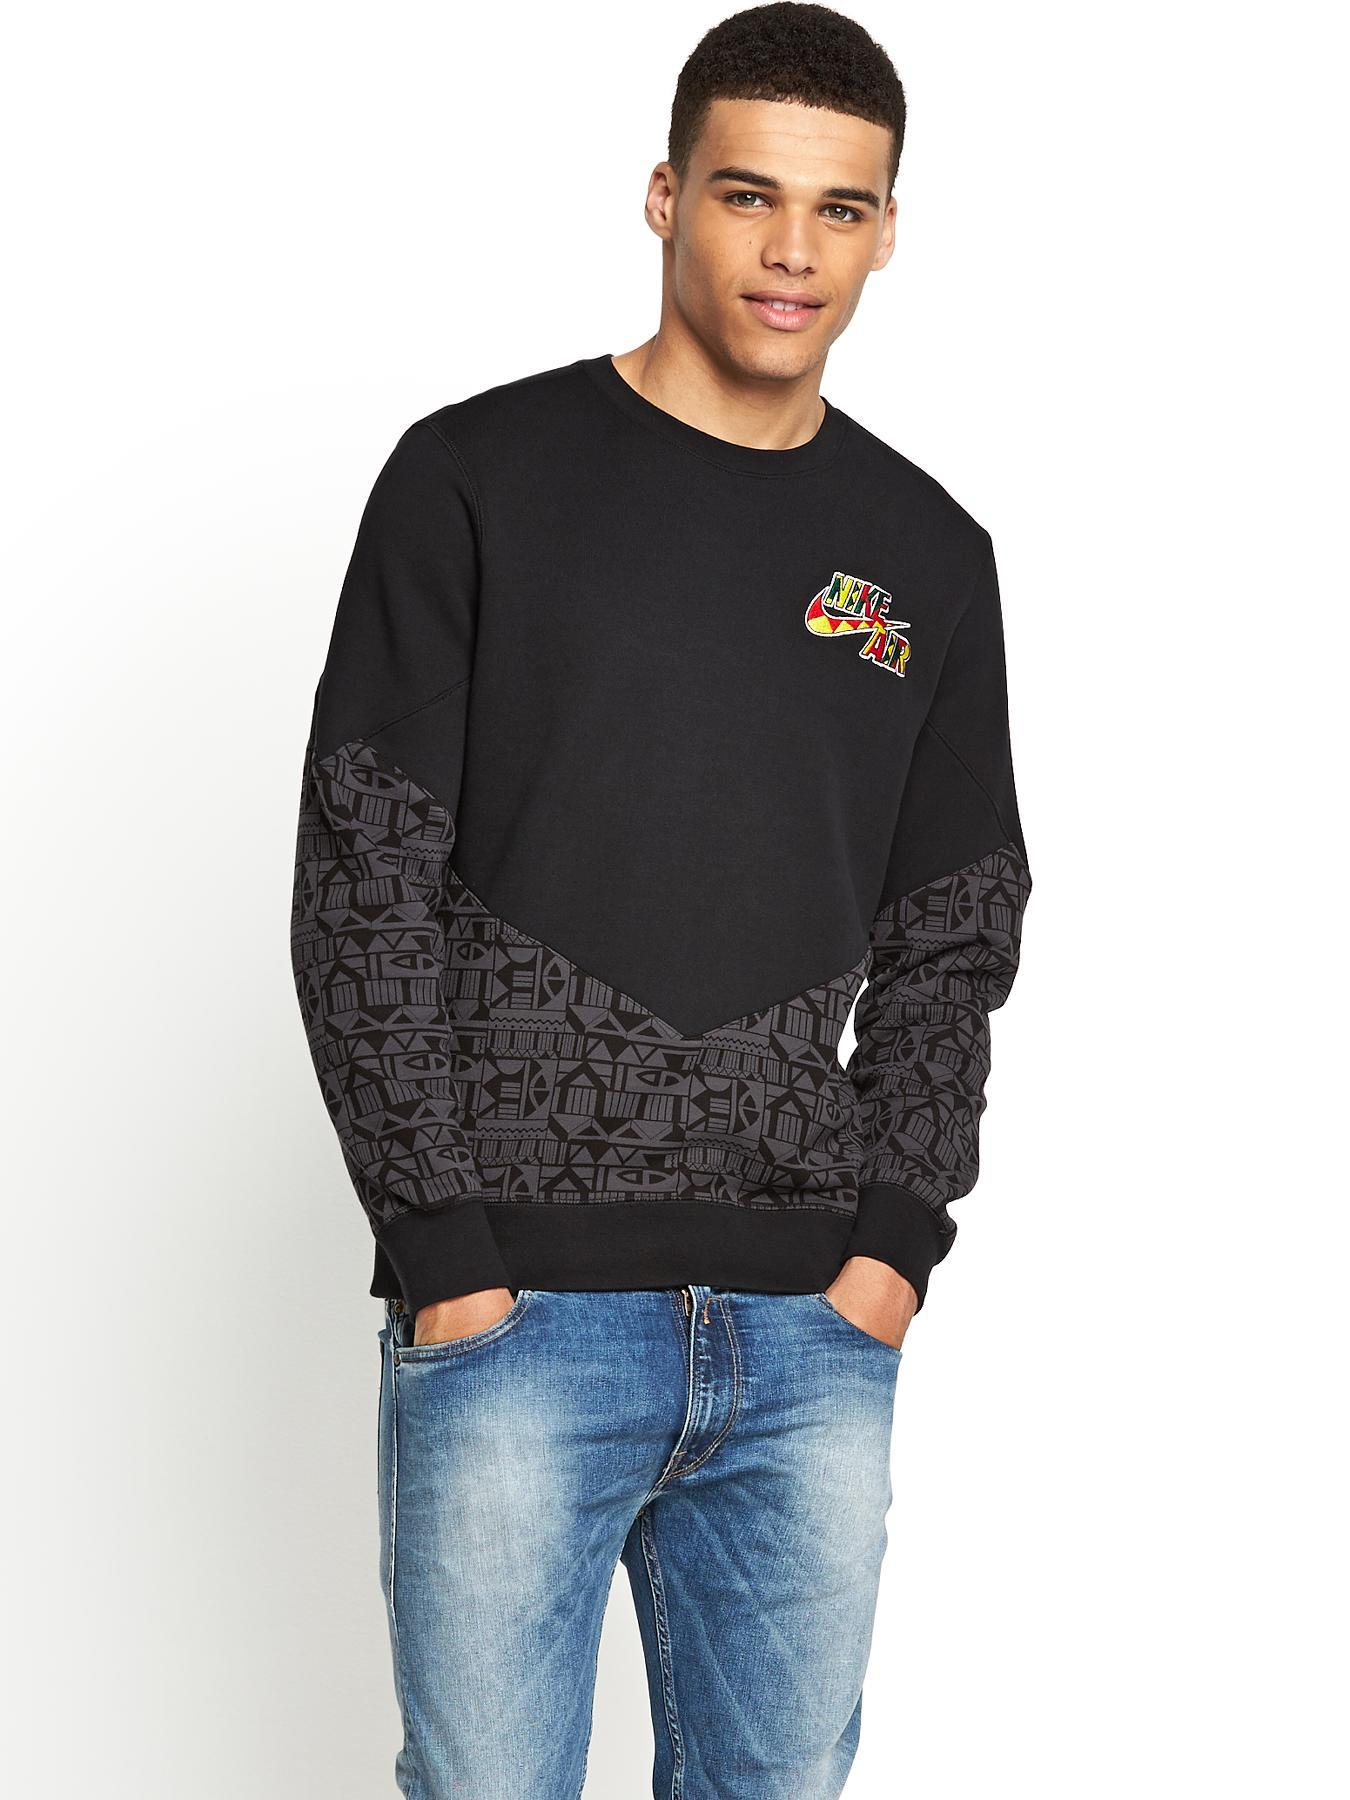 Shop a great selection of Crewneck Sweaters for Men at Nordstrom Rack. Find designer Crewneck Sweaters for Men up to 70% off and get free shipping on orders over $